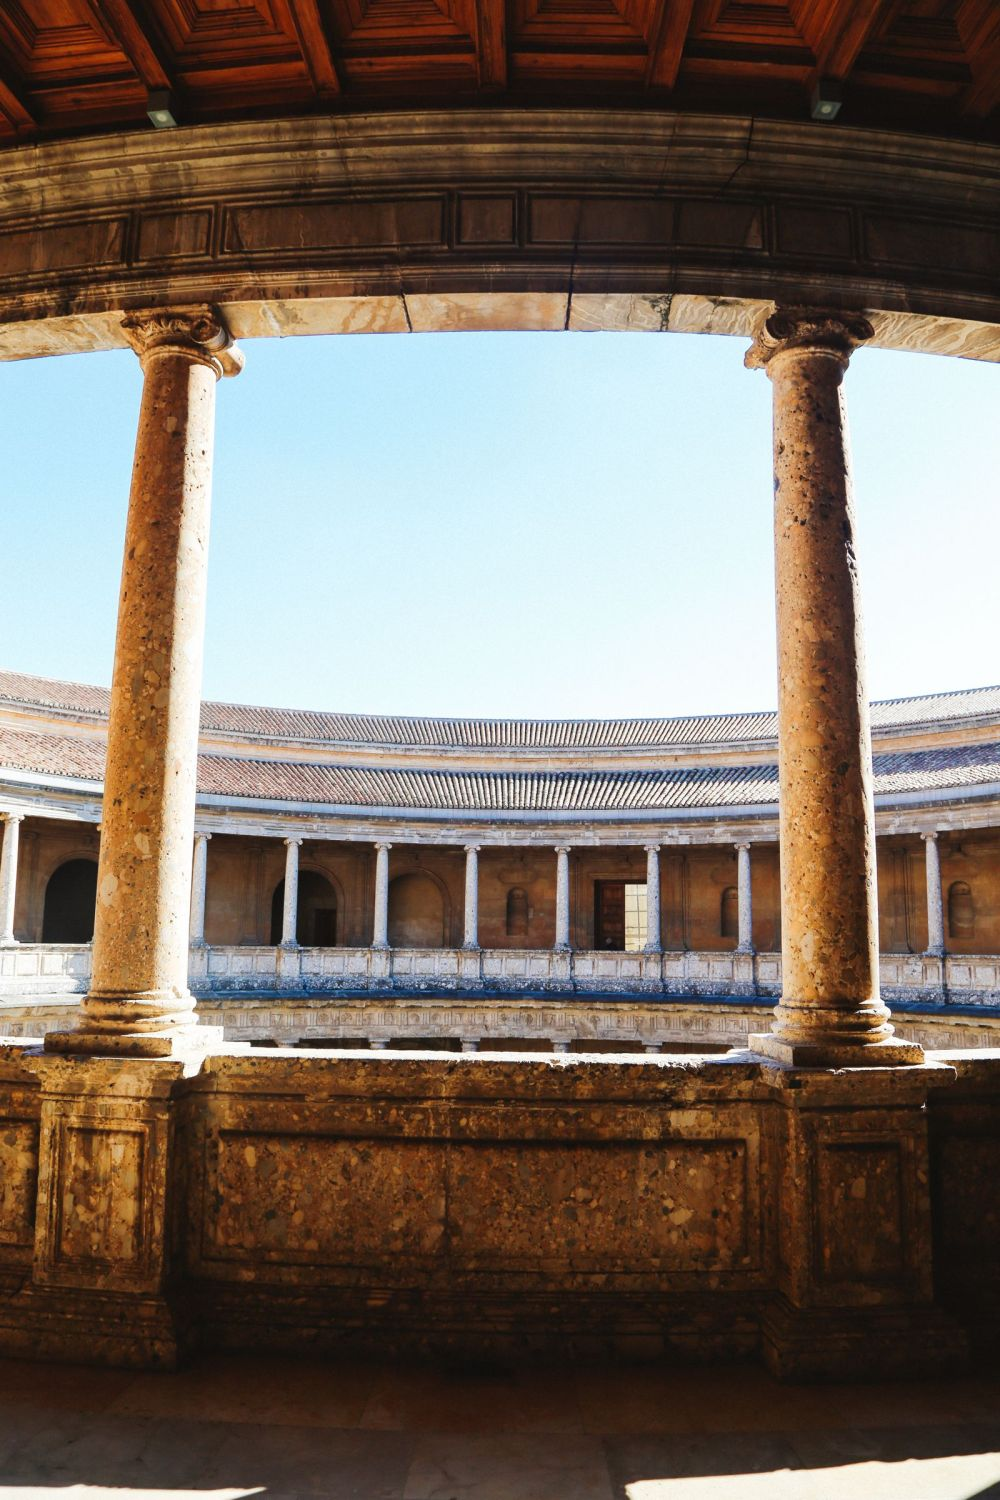 The Amazingly Intricate Alhambra Palace of Spain (69)